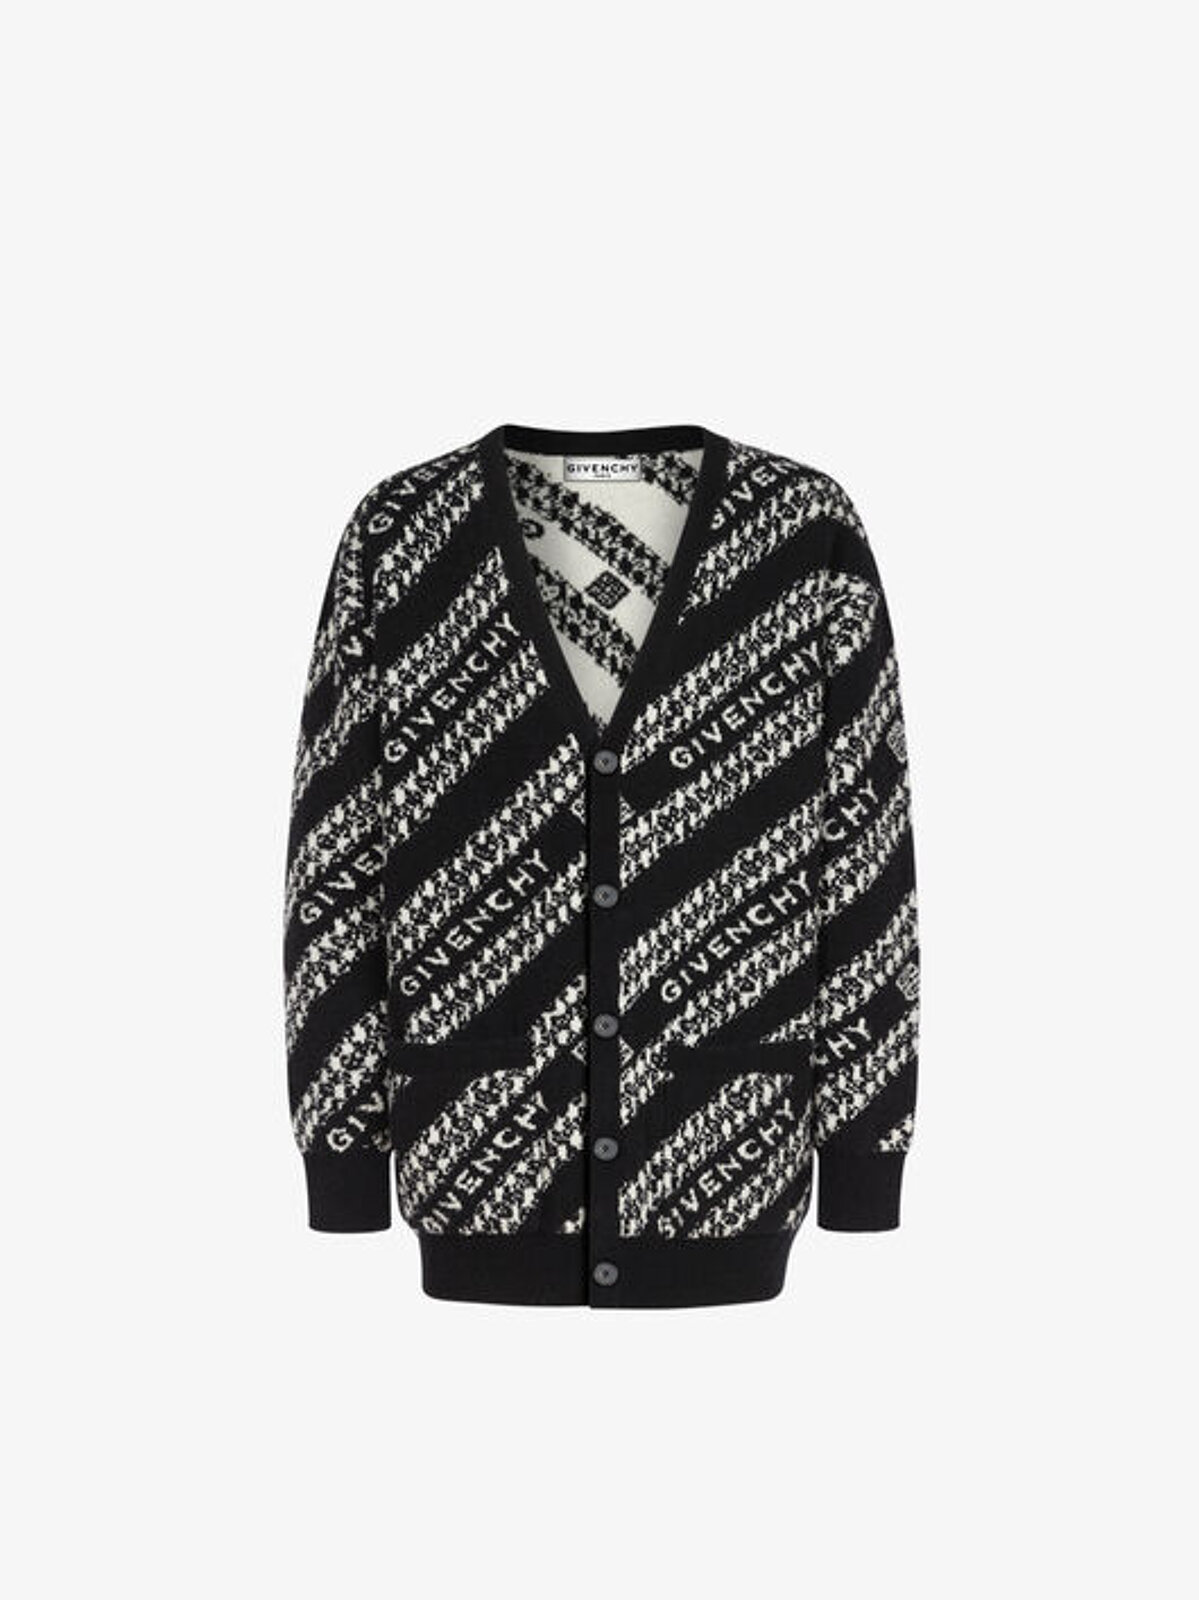 Cardigan Givenchy Chaîne In Jacquard - Givenchy